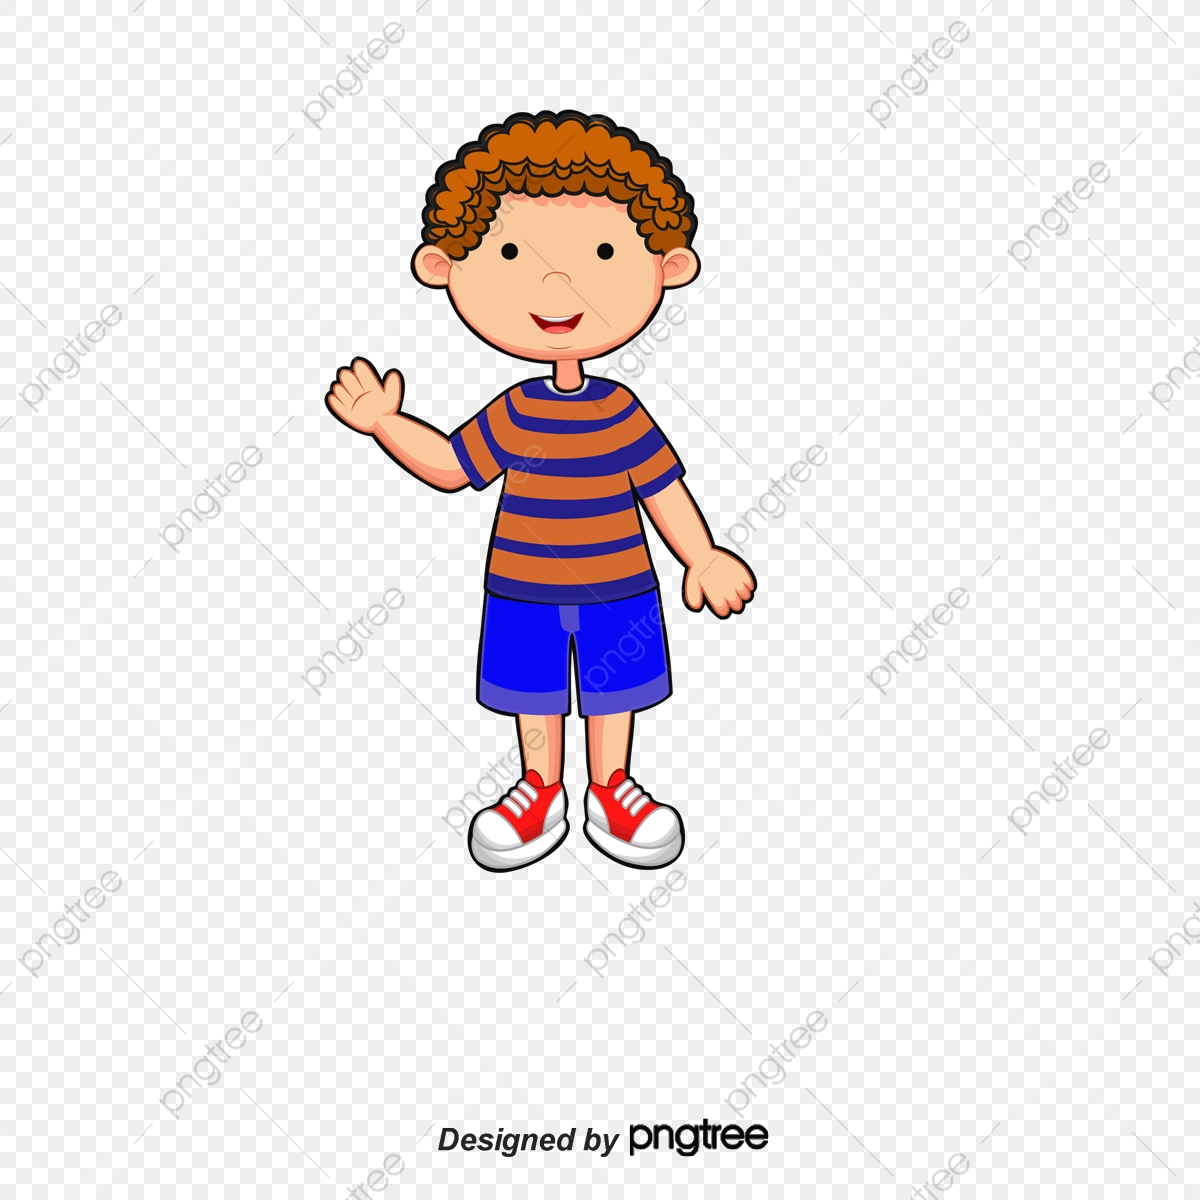 Cartoon Boy Png Images Vector And Psd Files Free Download On Pngtree